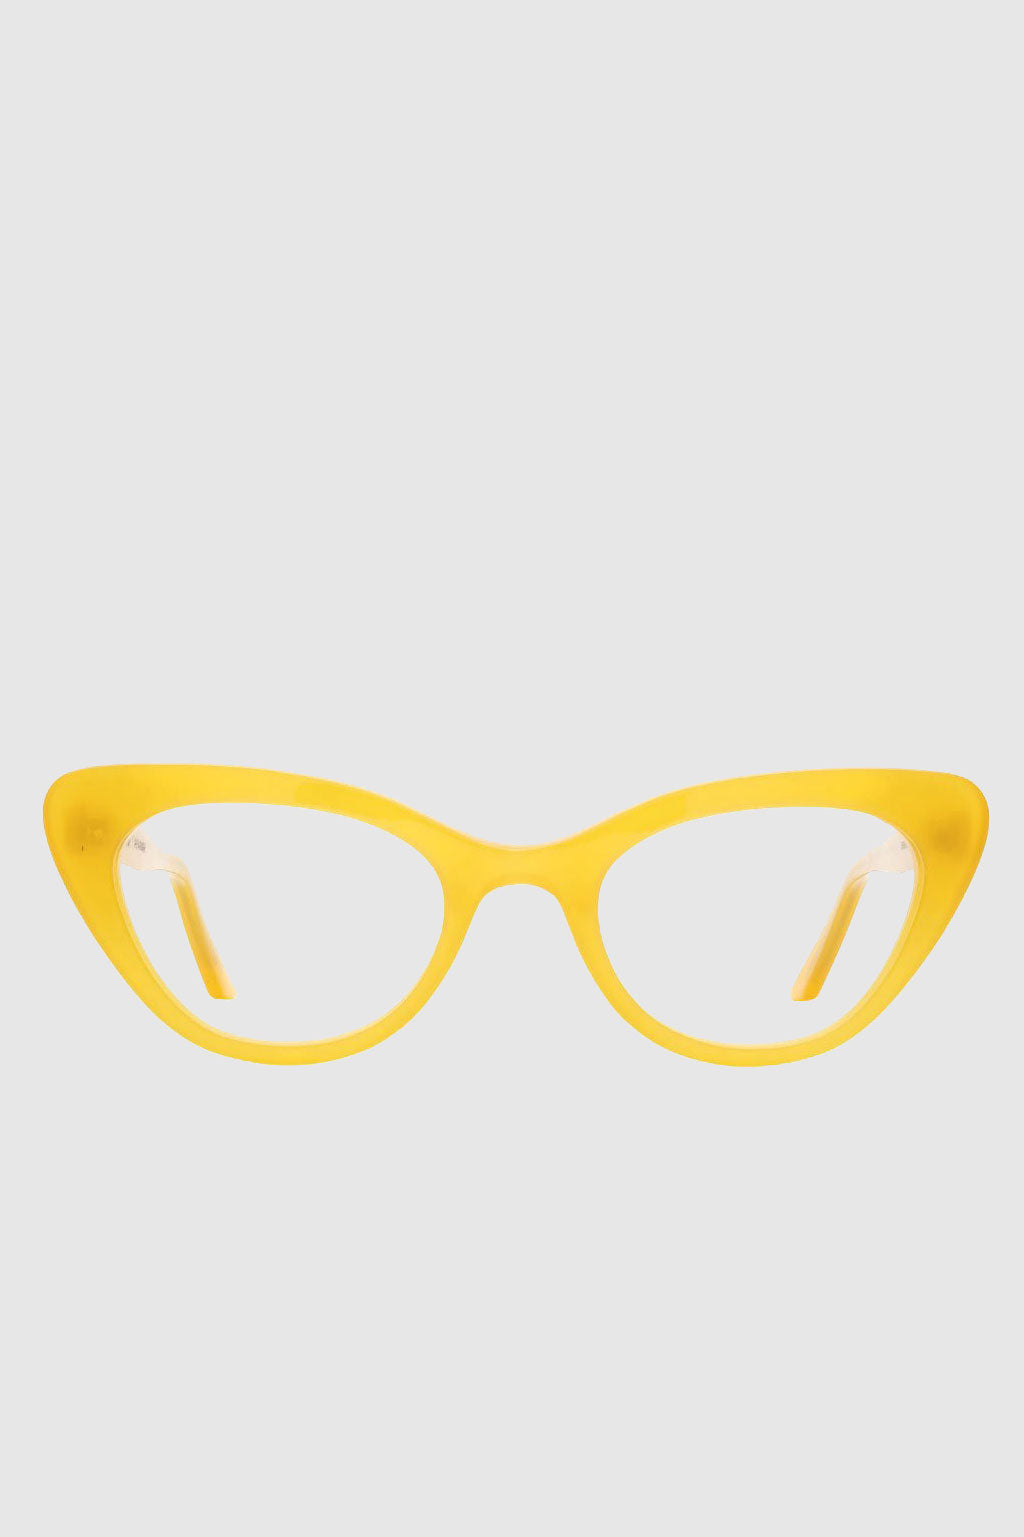 Steeplechase Optical Glasses in Canary